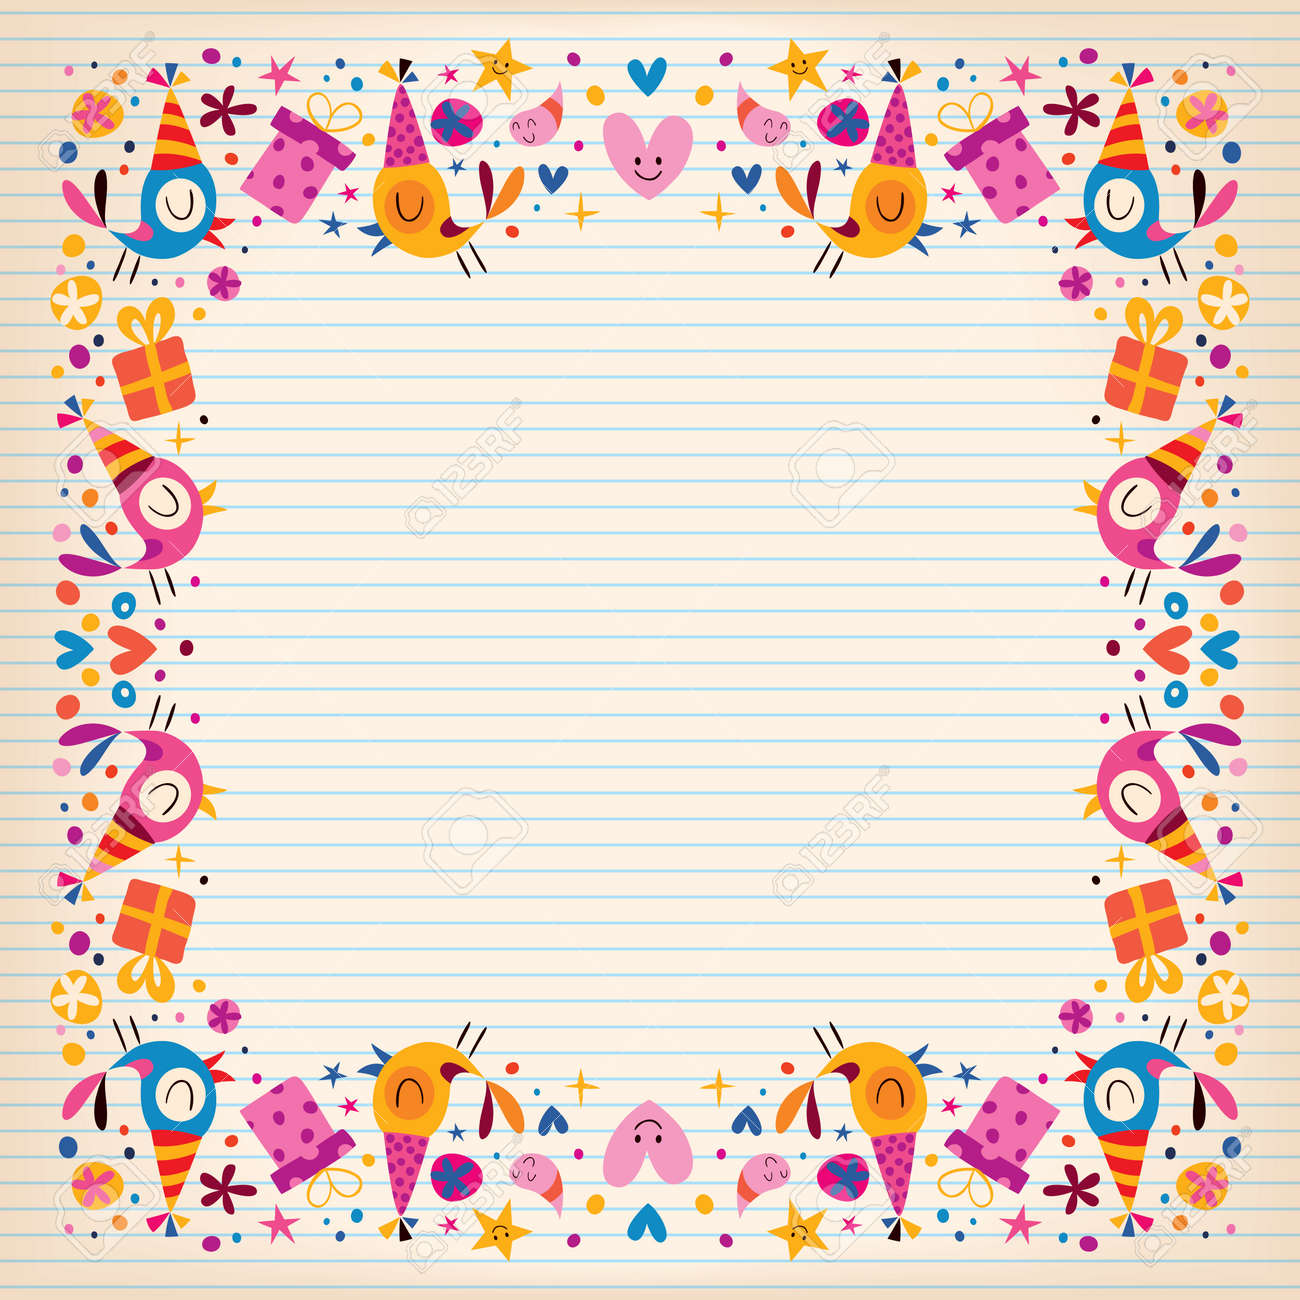 happy birthday border lined paper card with space for text royalty